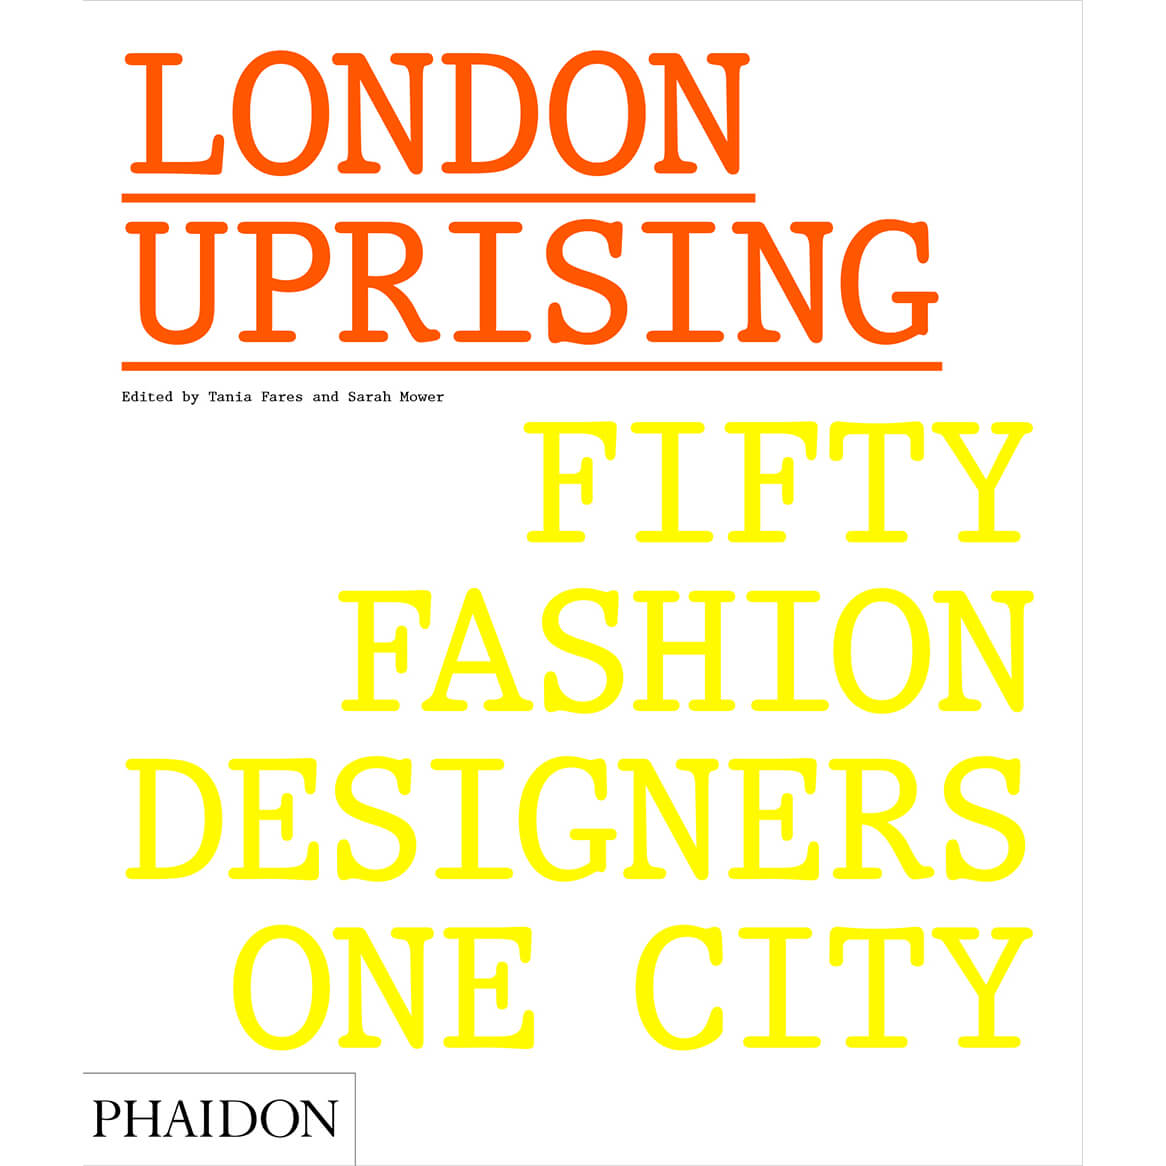 Phaidon Books: London Uprising